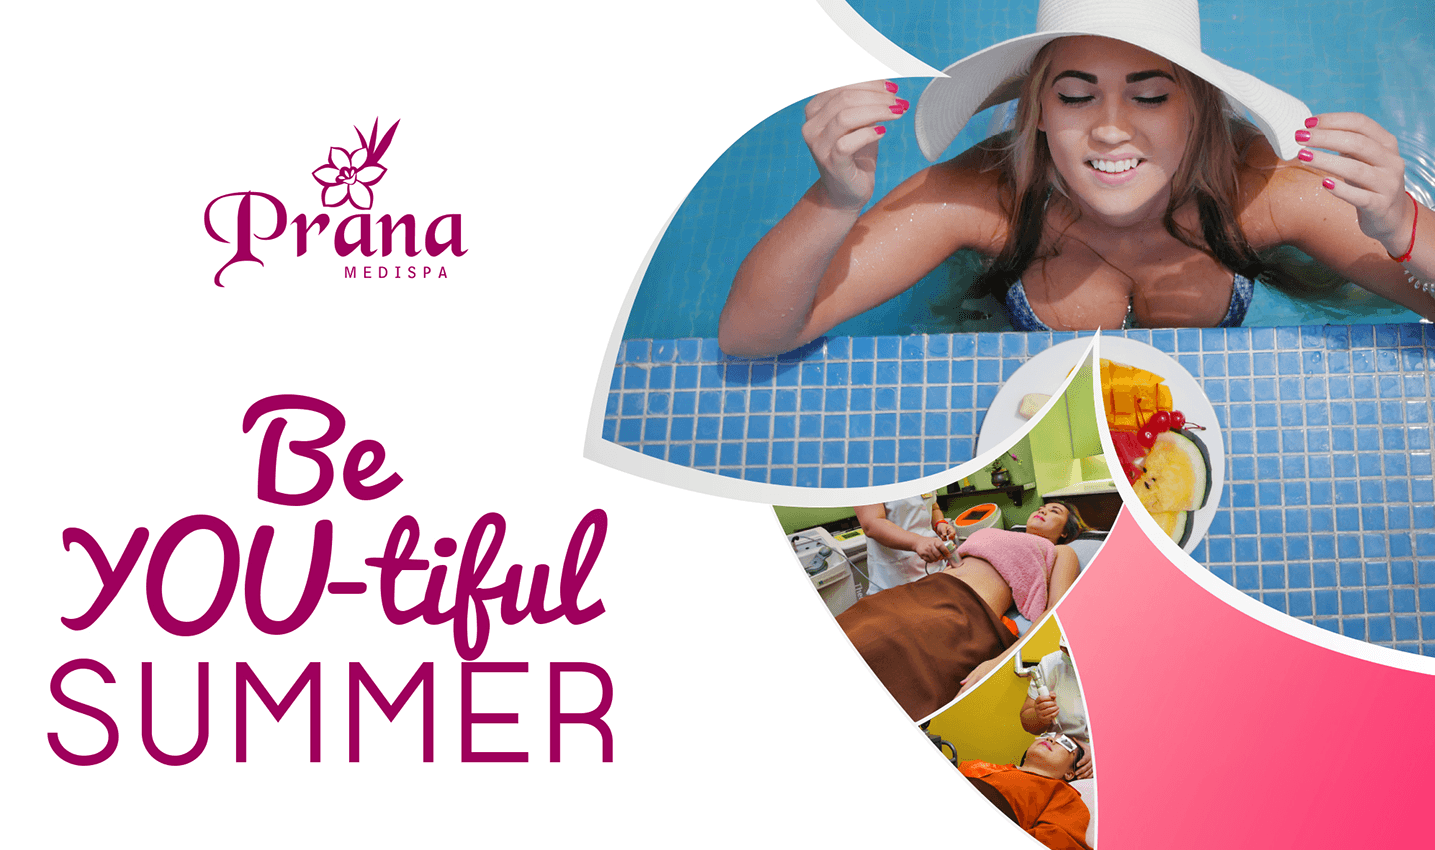 Prana Medispa BeYOUtiful Summer Promo